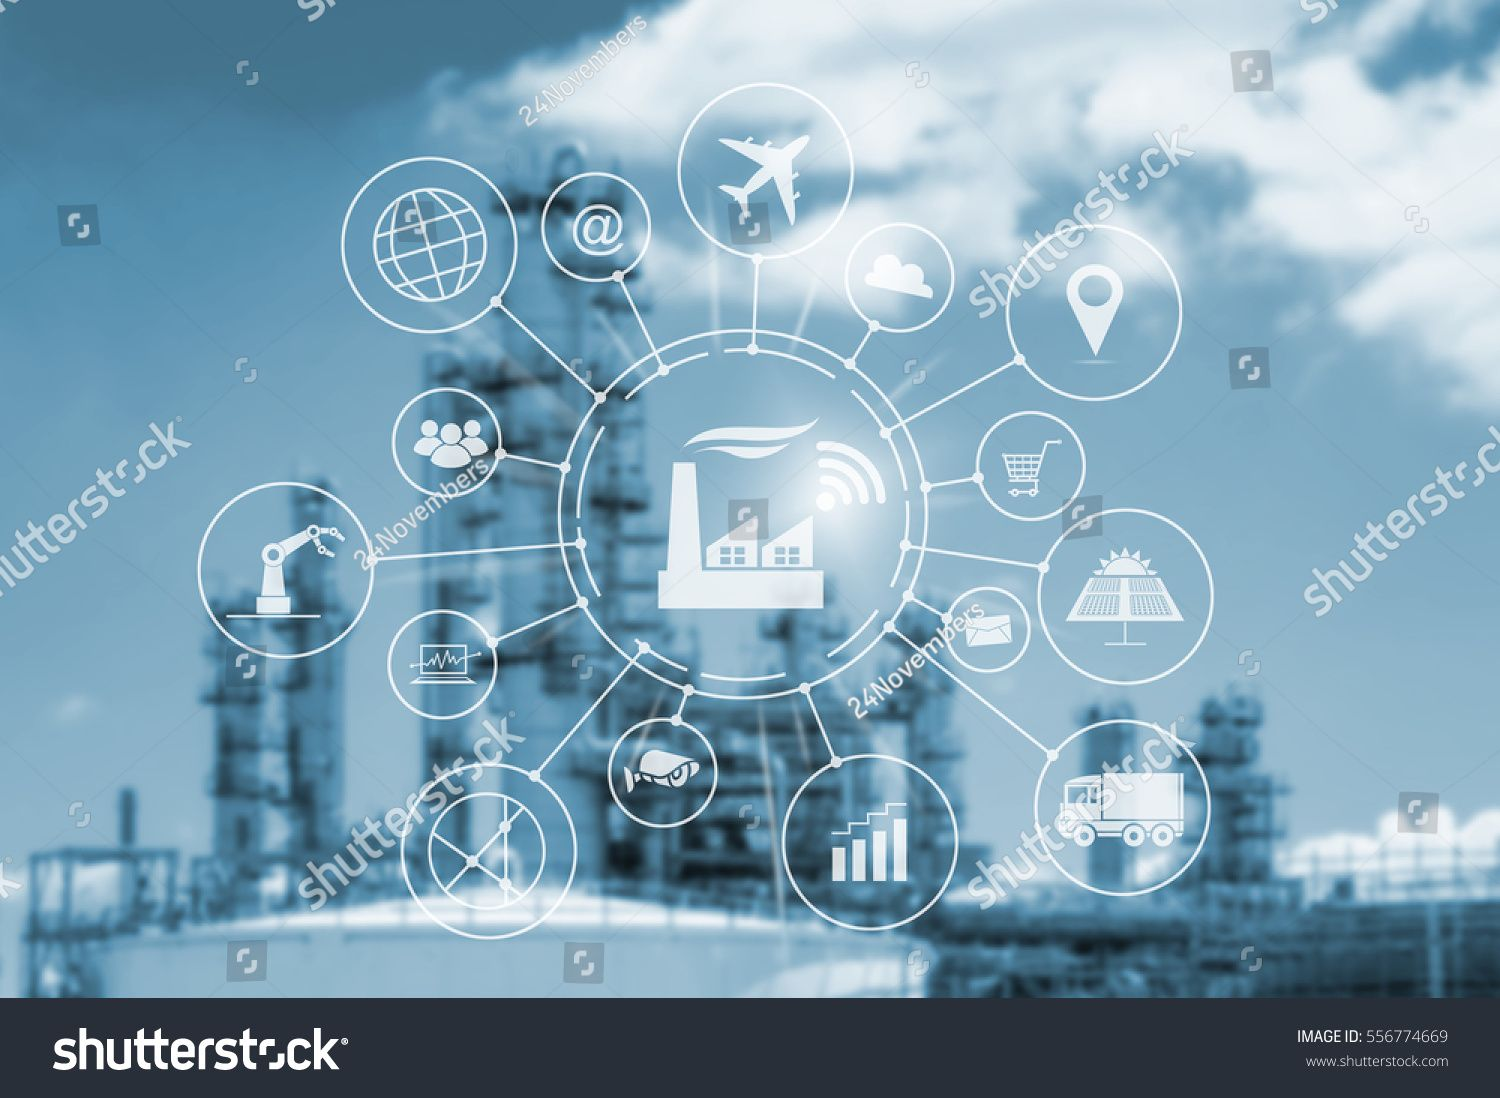 Industry 4.0 concept, smart factory with icon flow